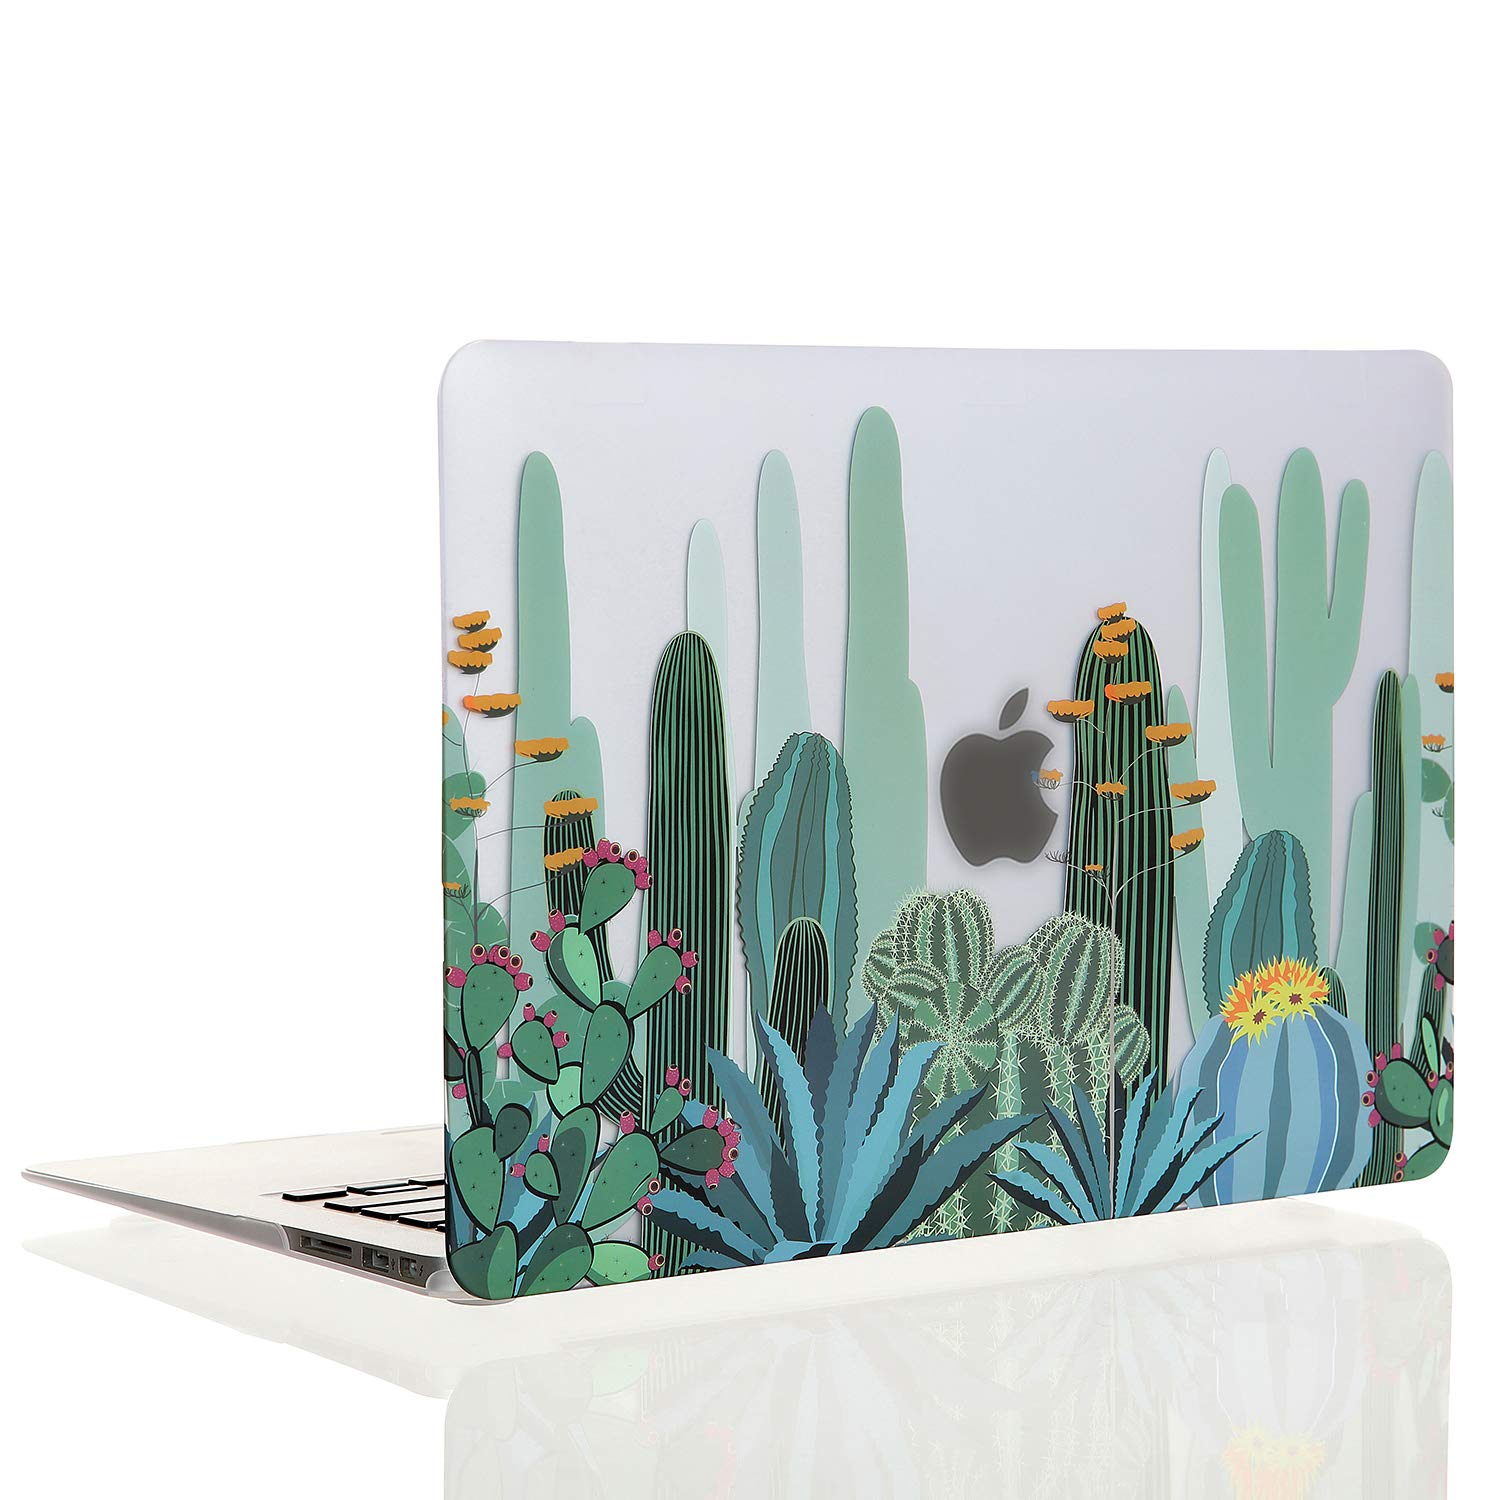 EkuaBot Cactus MacBook Pro 15 inch Case (A1990/A1707, New Version 2016-2019 Release), Matt Clear Rubber Coated Soft Touch Hard Case Cover Only Compatible MacBook Pro 15.4 inch with Touch Bar